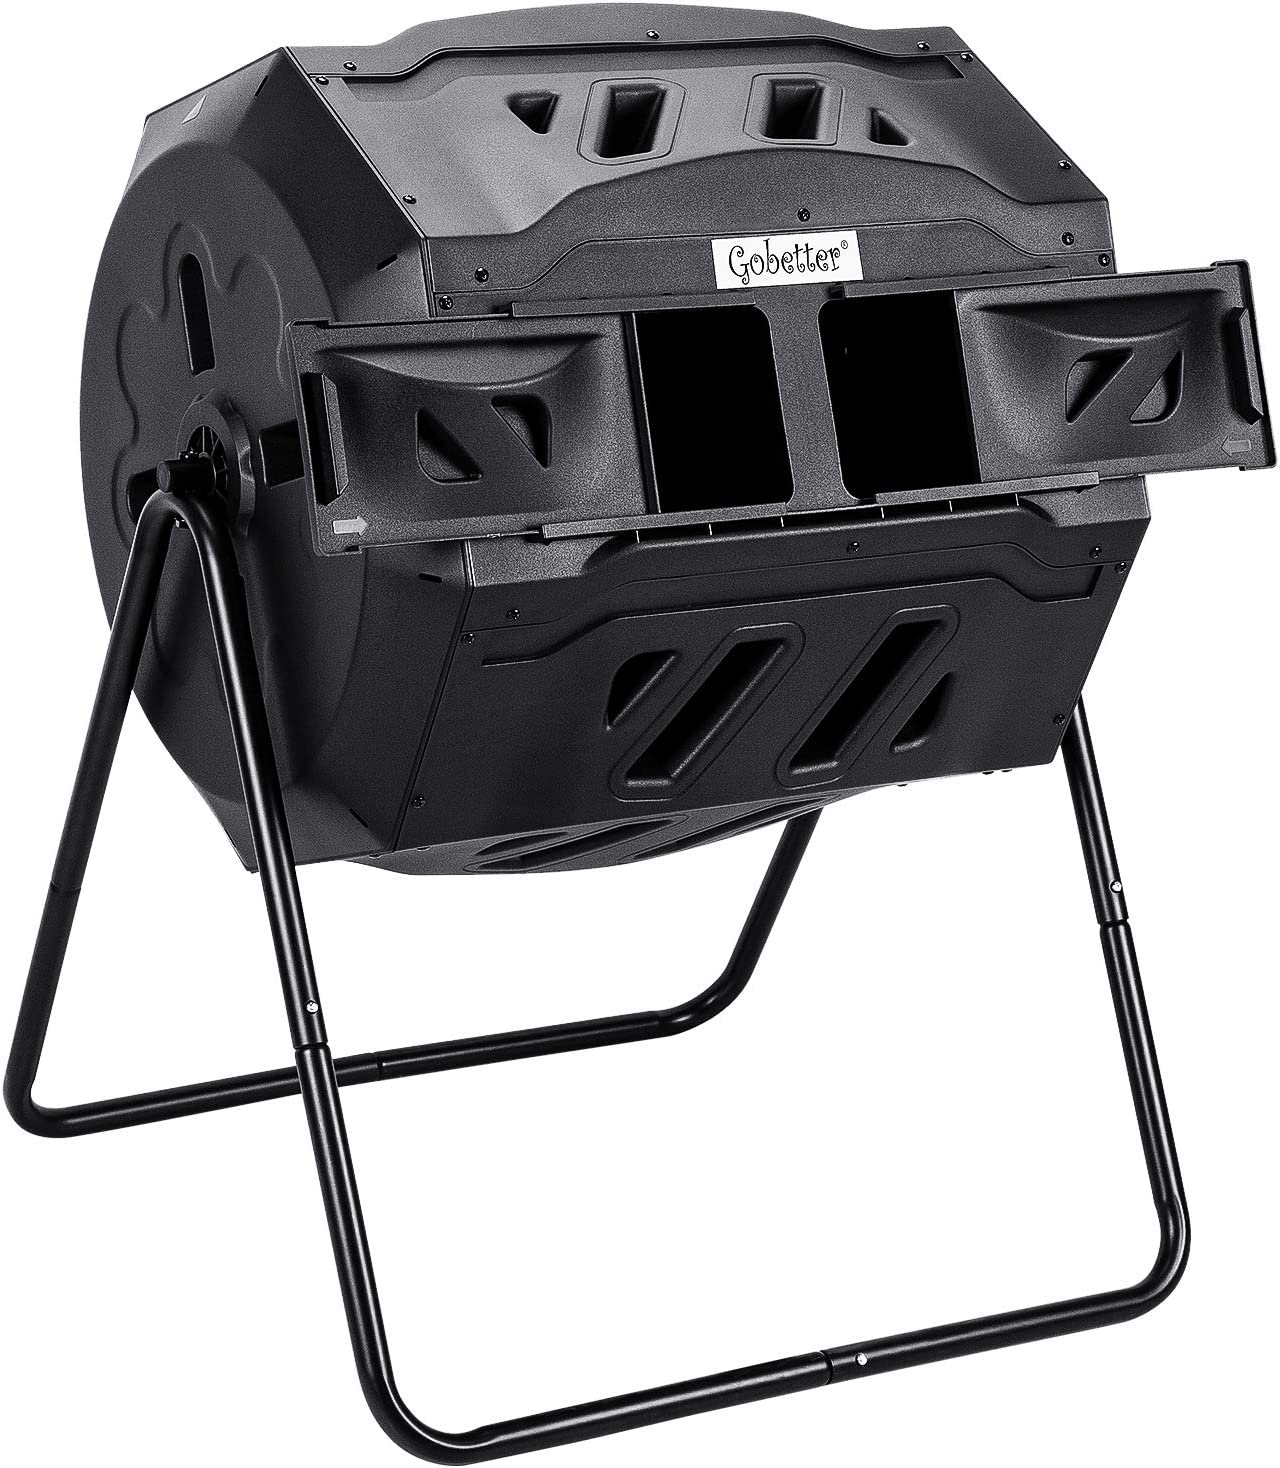 Compost Bin Outdoor, Compost Tumbler 45 Gallon Composter Tumbling Rotating with Dual Chamber, BPA Free and UV Resistant